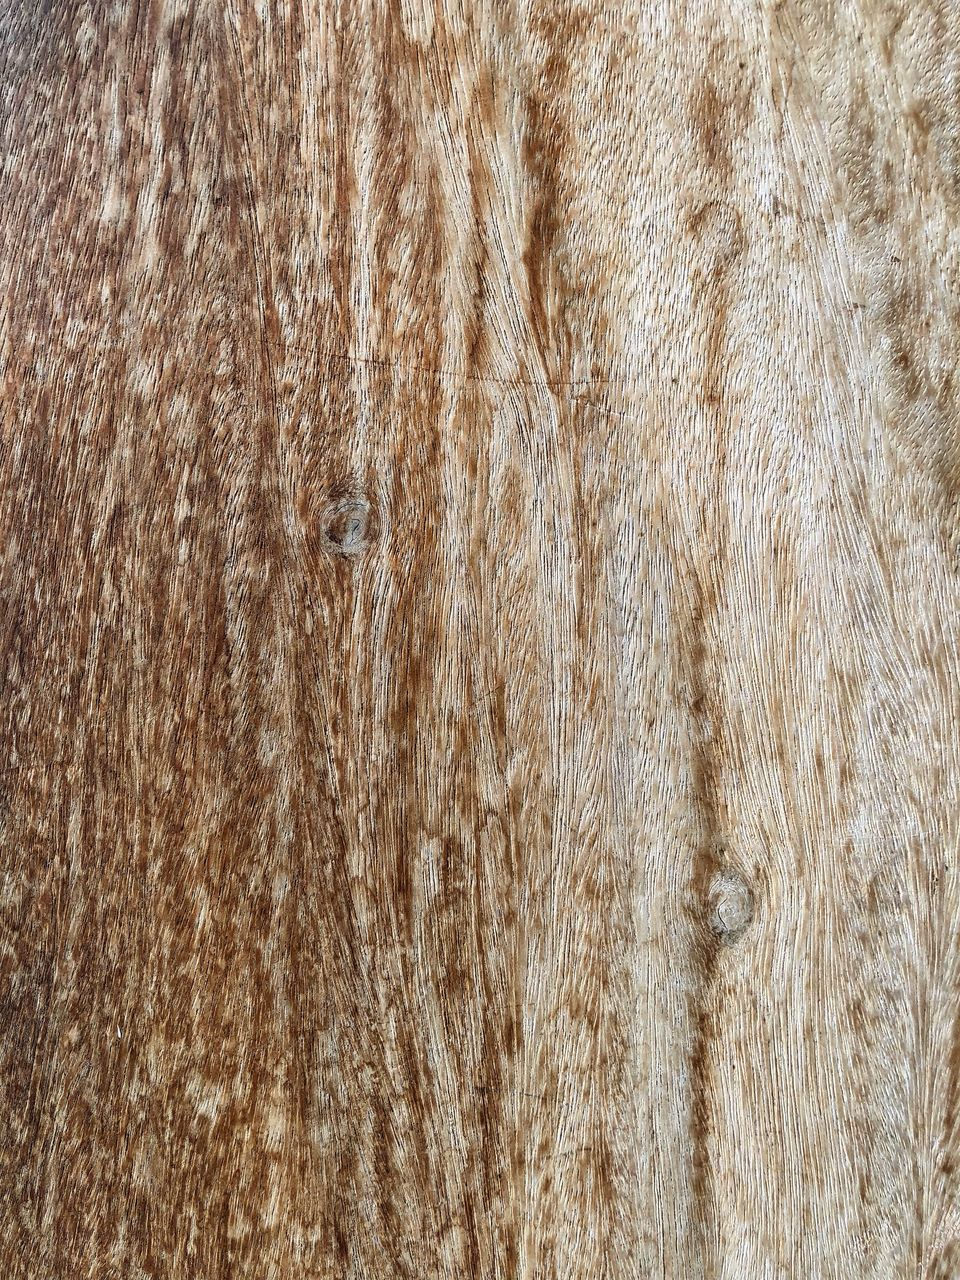 backgrounds, full frame, textured, brown, pattern, close-up, no people, animal hair, wood grain, wood, hair, animal, fur, wood - material, nature, rough, abstract, mammal, outdoors, animal themes, textured effect